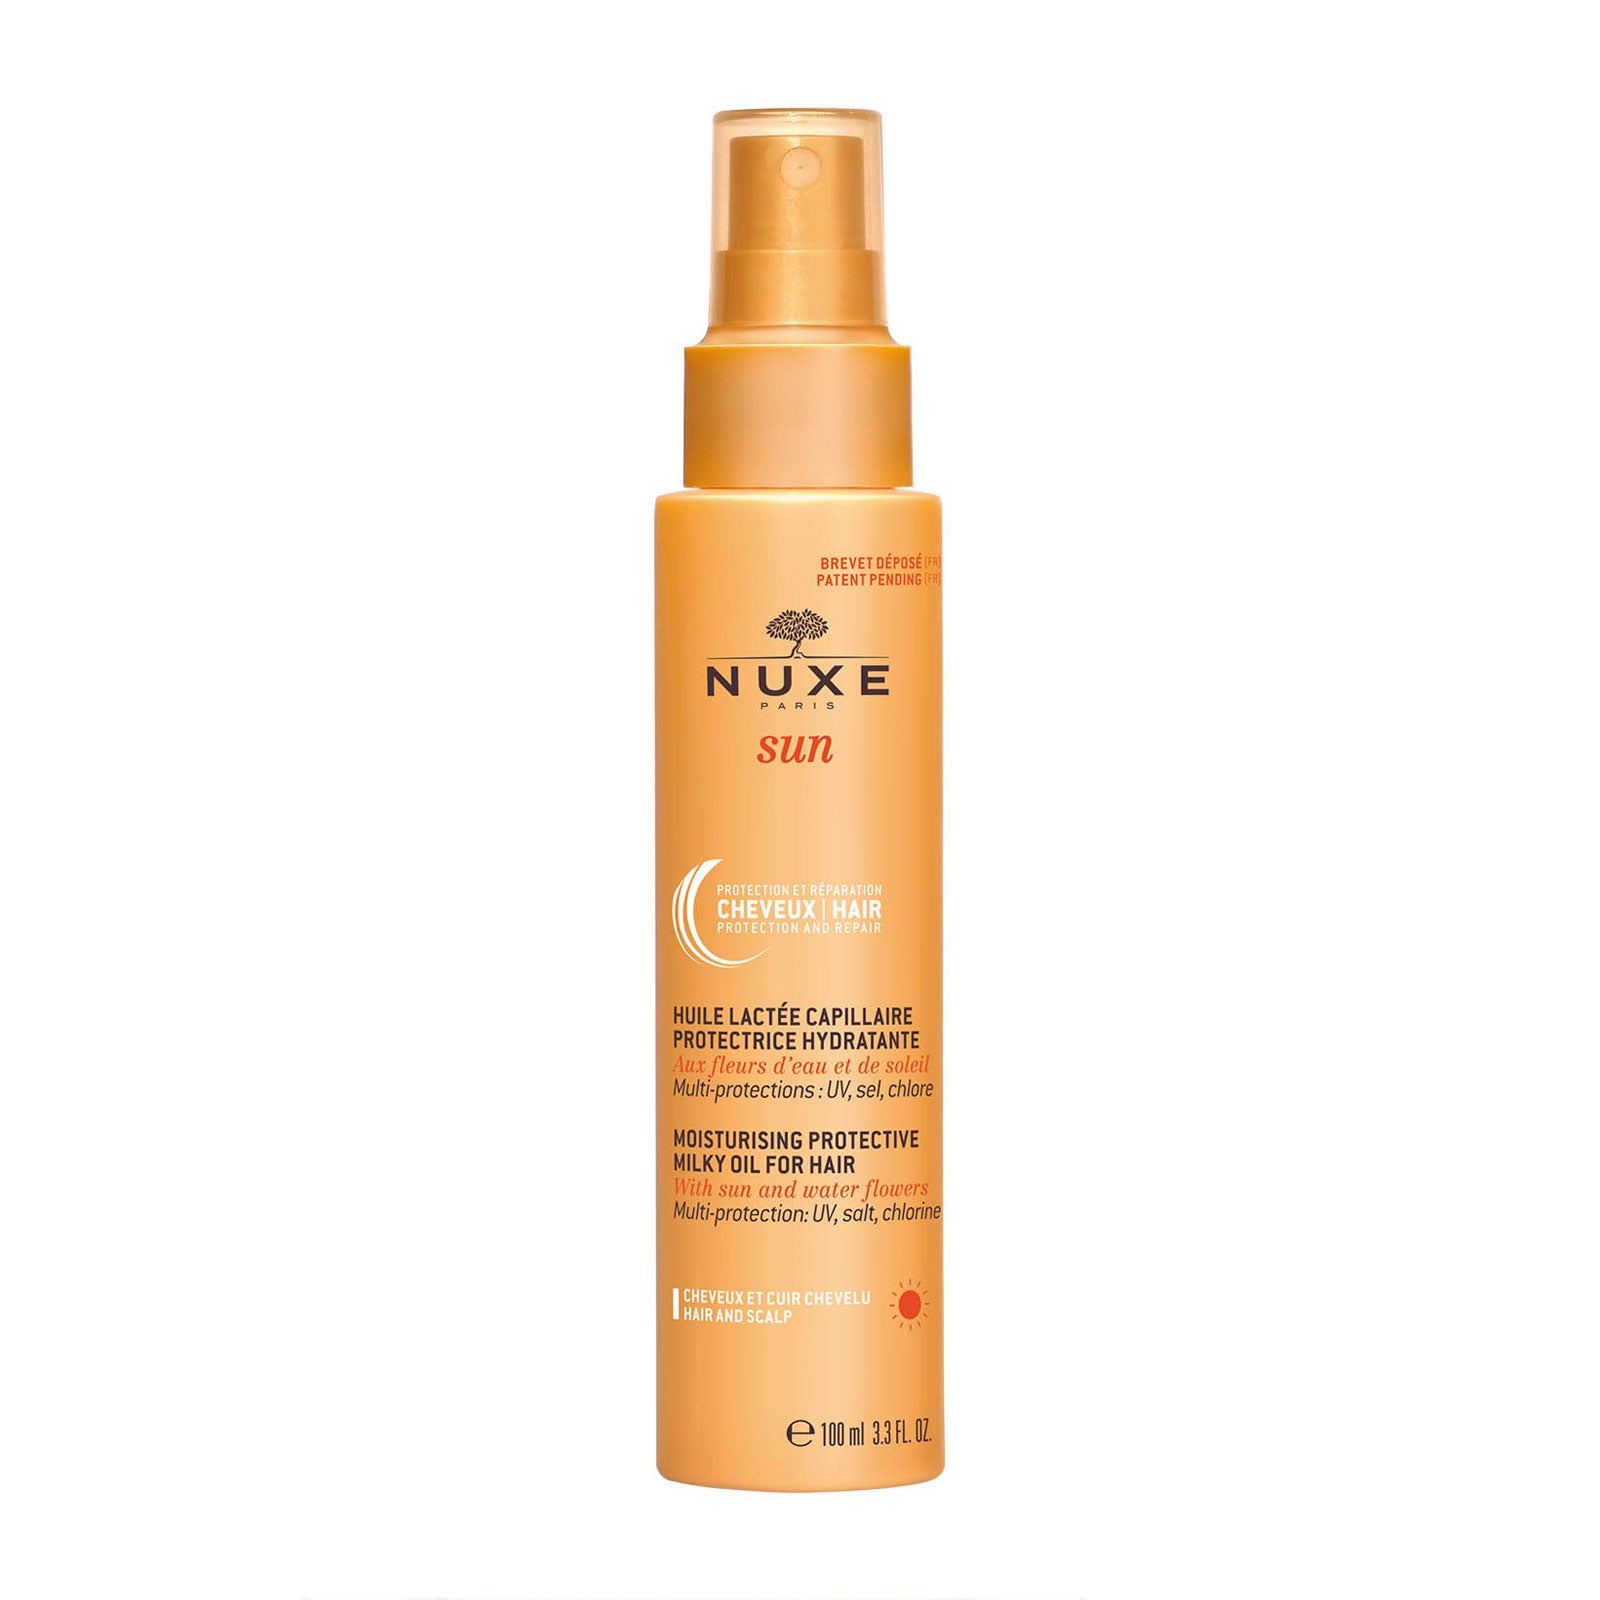 NUXE Sun Moisturising Protective Milky Oil for Hair 100ml